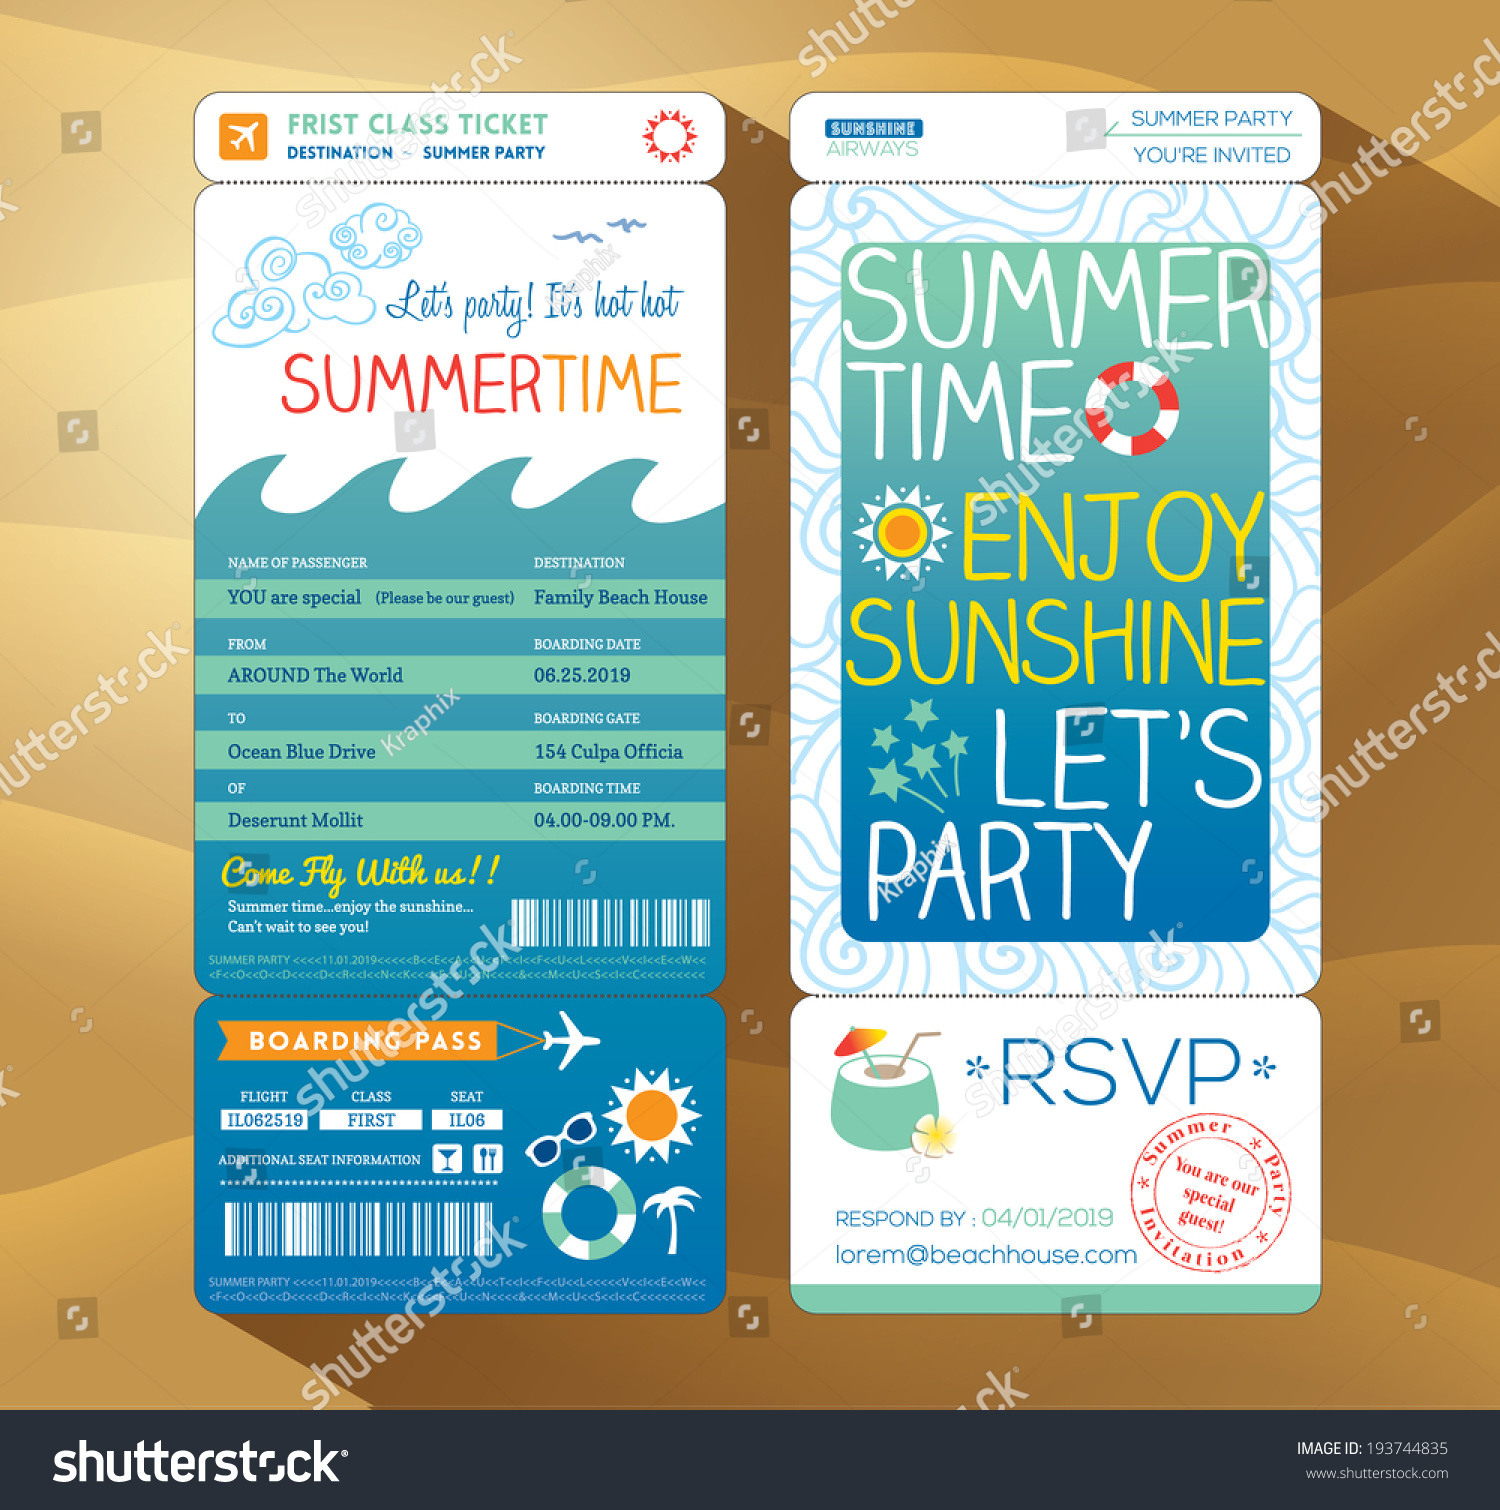 summertime holiday party boarding pass background stock vector summertime holiday party boarding pass background vector template for summer card